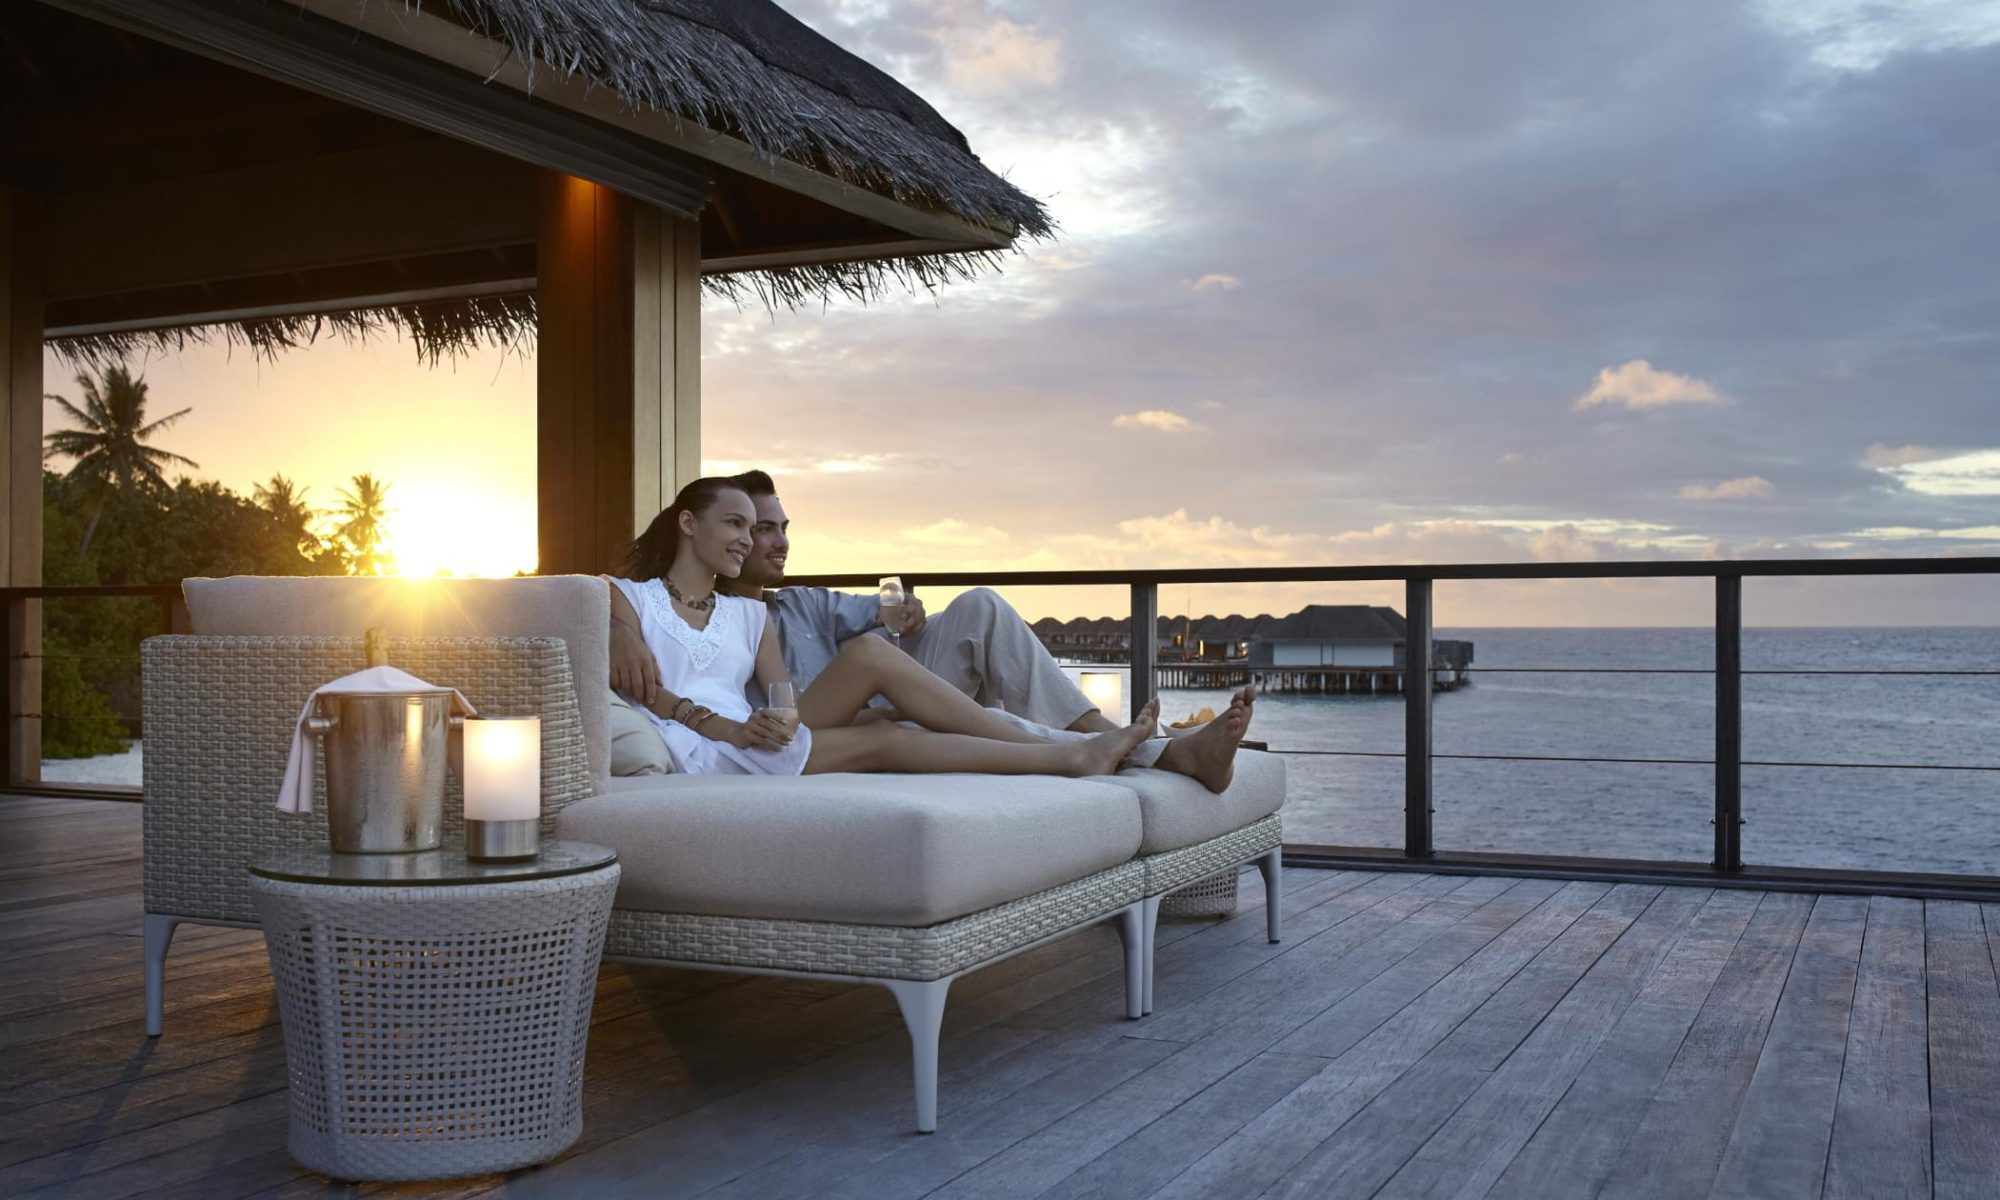 Dusit Thani Maldives - couple dining on sofa